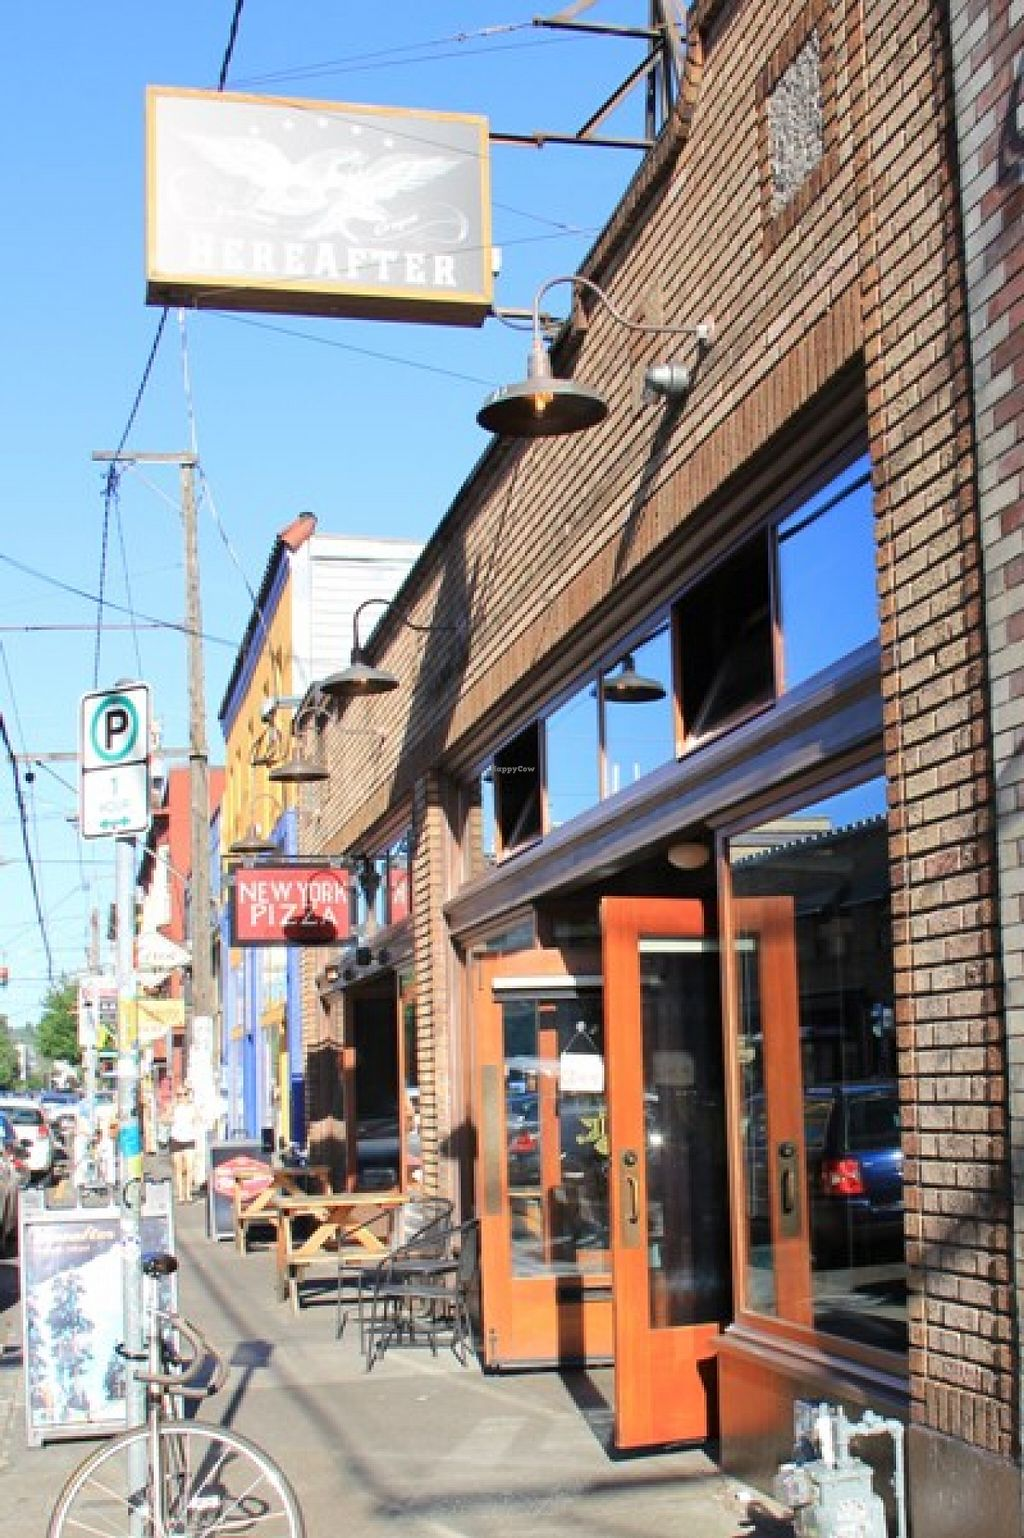 """Photo of Sweet Hereafter  by <a href=""""/members/profile/Julie%20R"""">Julie R</a> <br/>The outside of Sweet Hereafter.  This is a very happening neighborhood - lots of shops and places around.  Loved it <br/> August 29, 2015  - <a href='/contact/abuse/image/27937/115672'>Report</a>"""